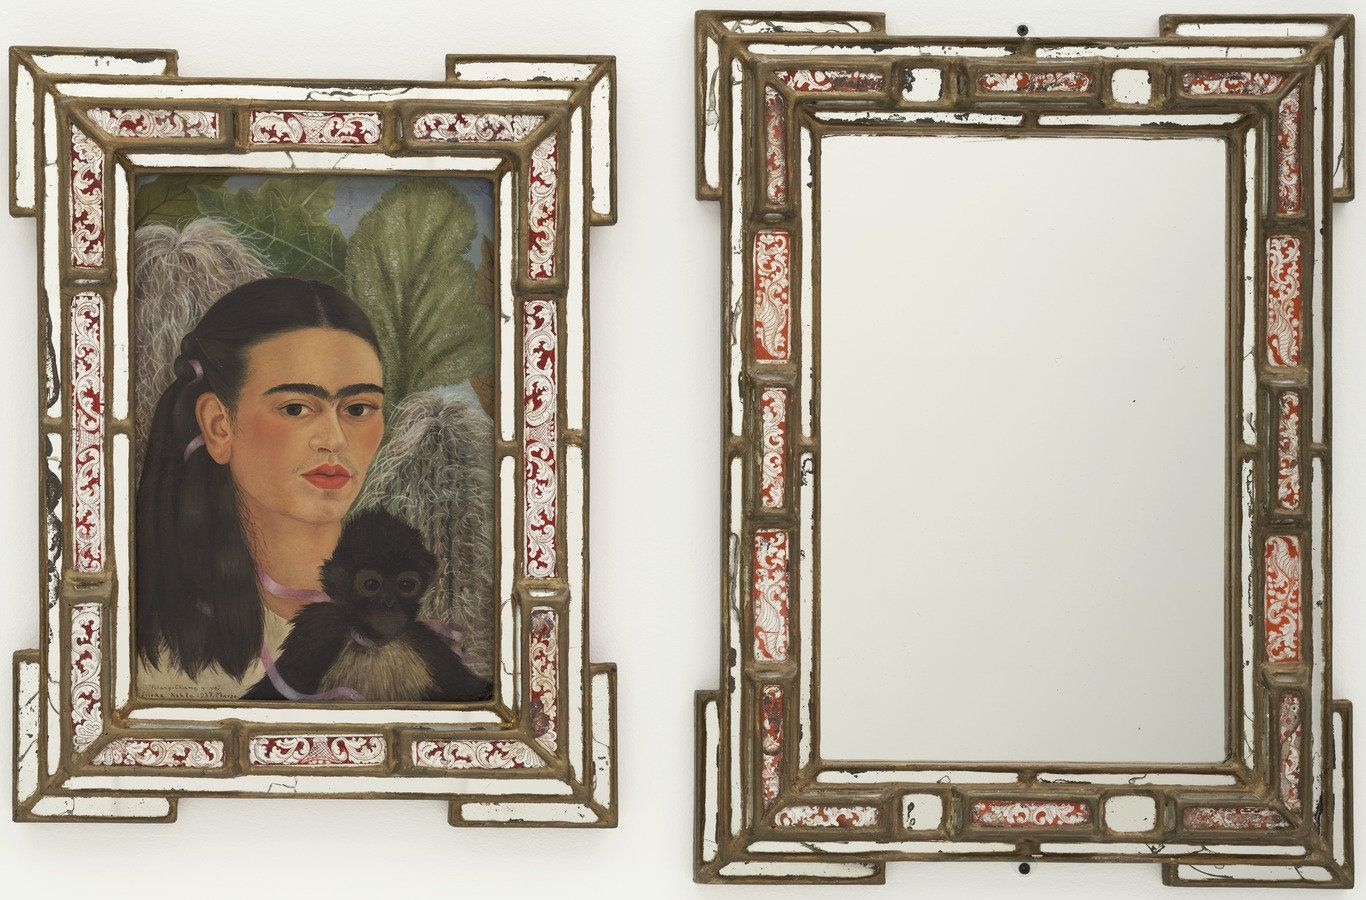 fulang-chang-and-i-frida-kahlo